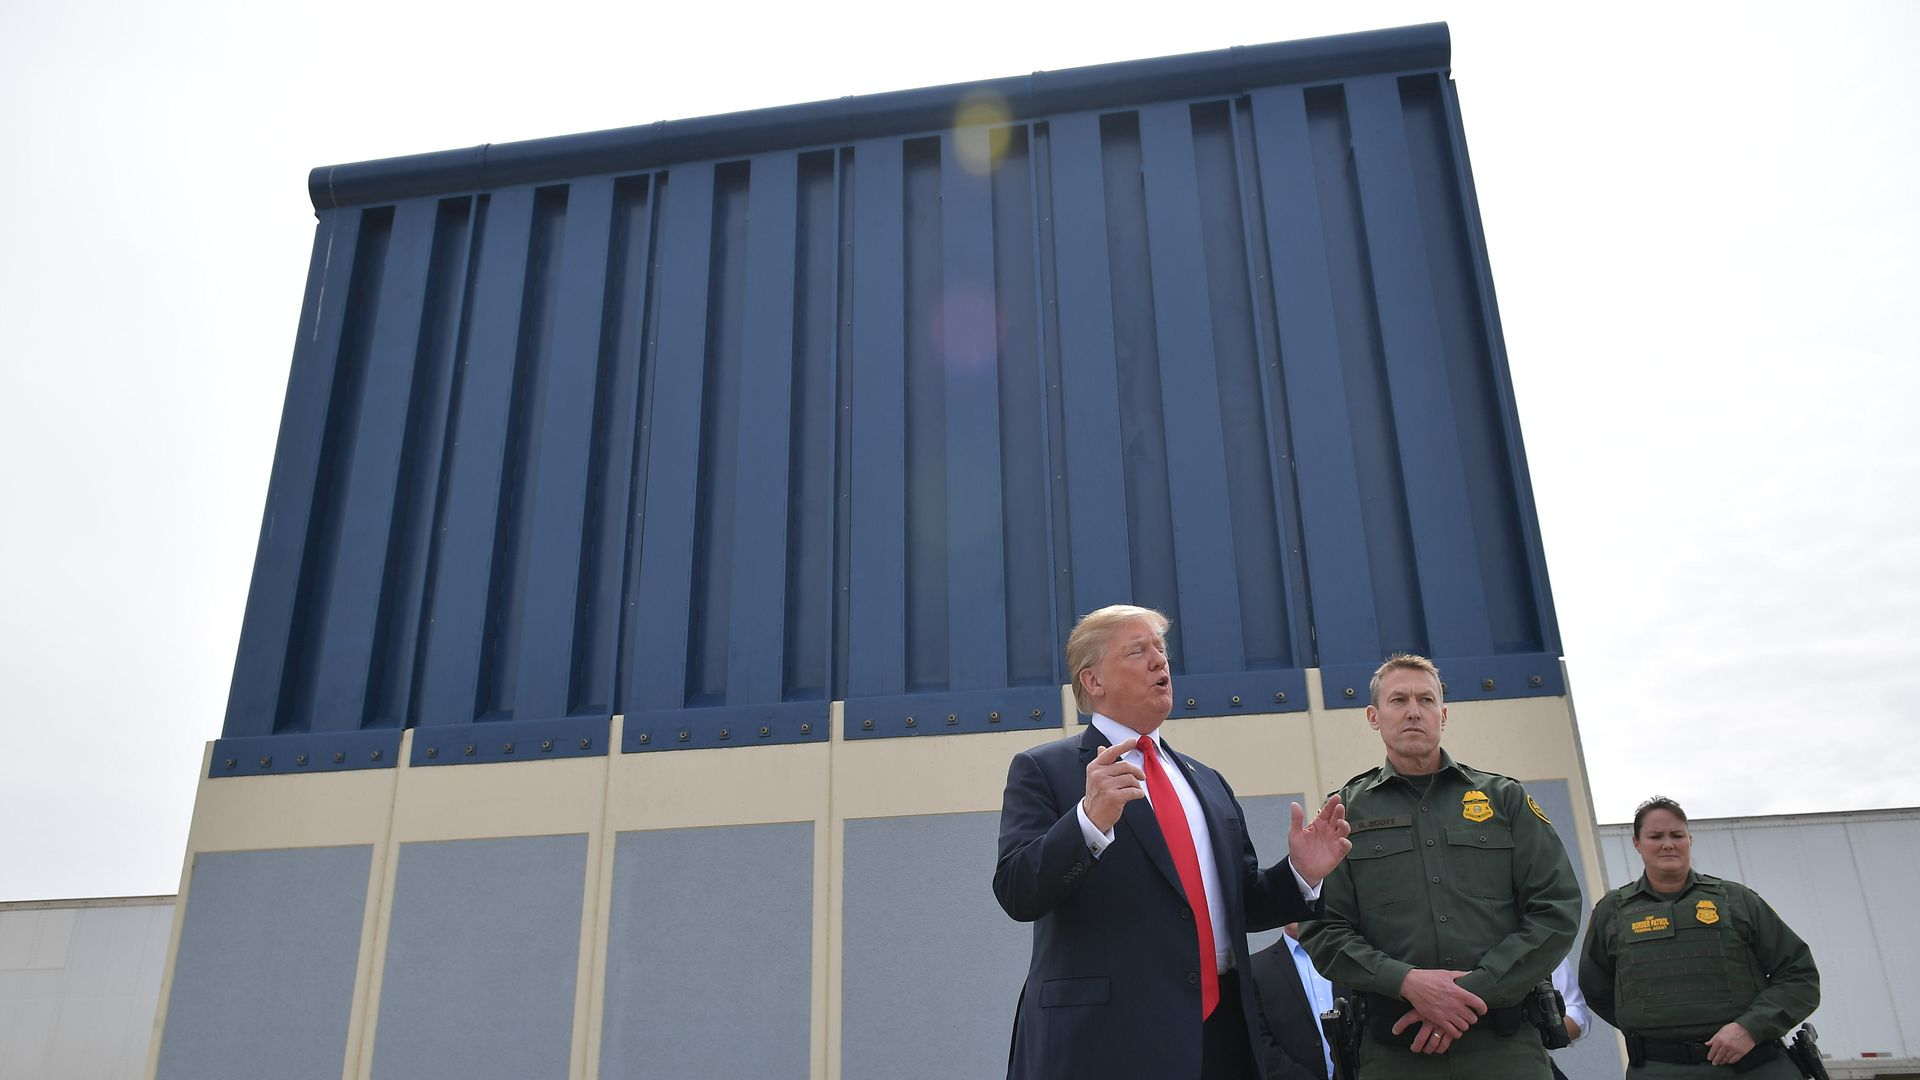 In this image, Trump talks while standing next to two border patrol officers in front of a test segment of border wall.